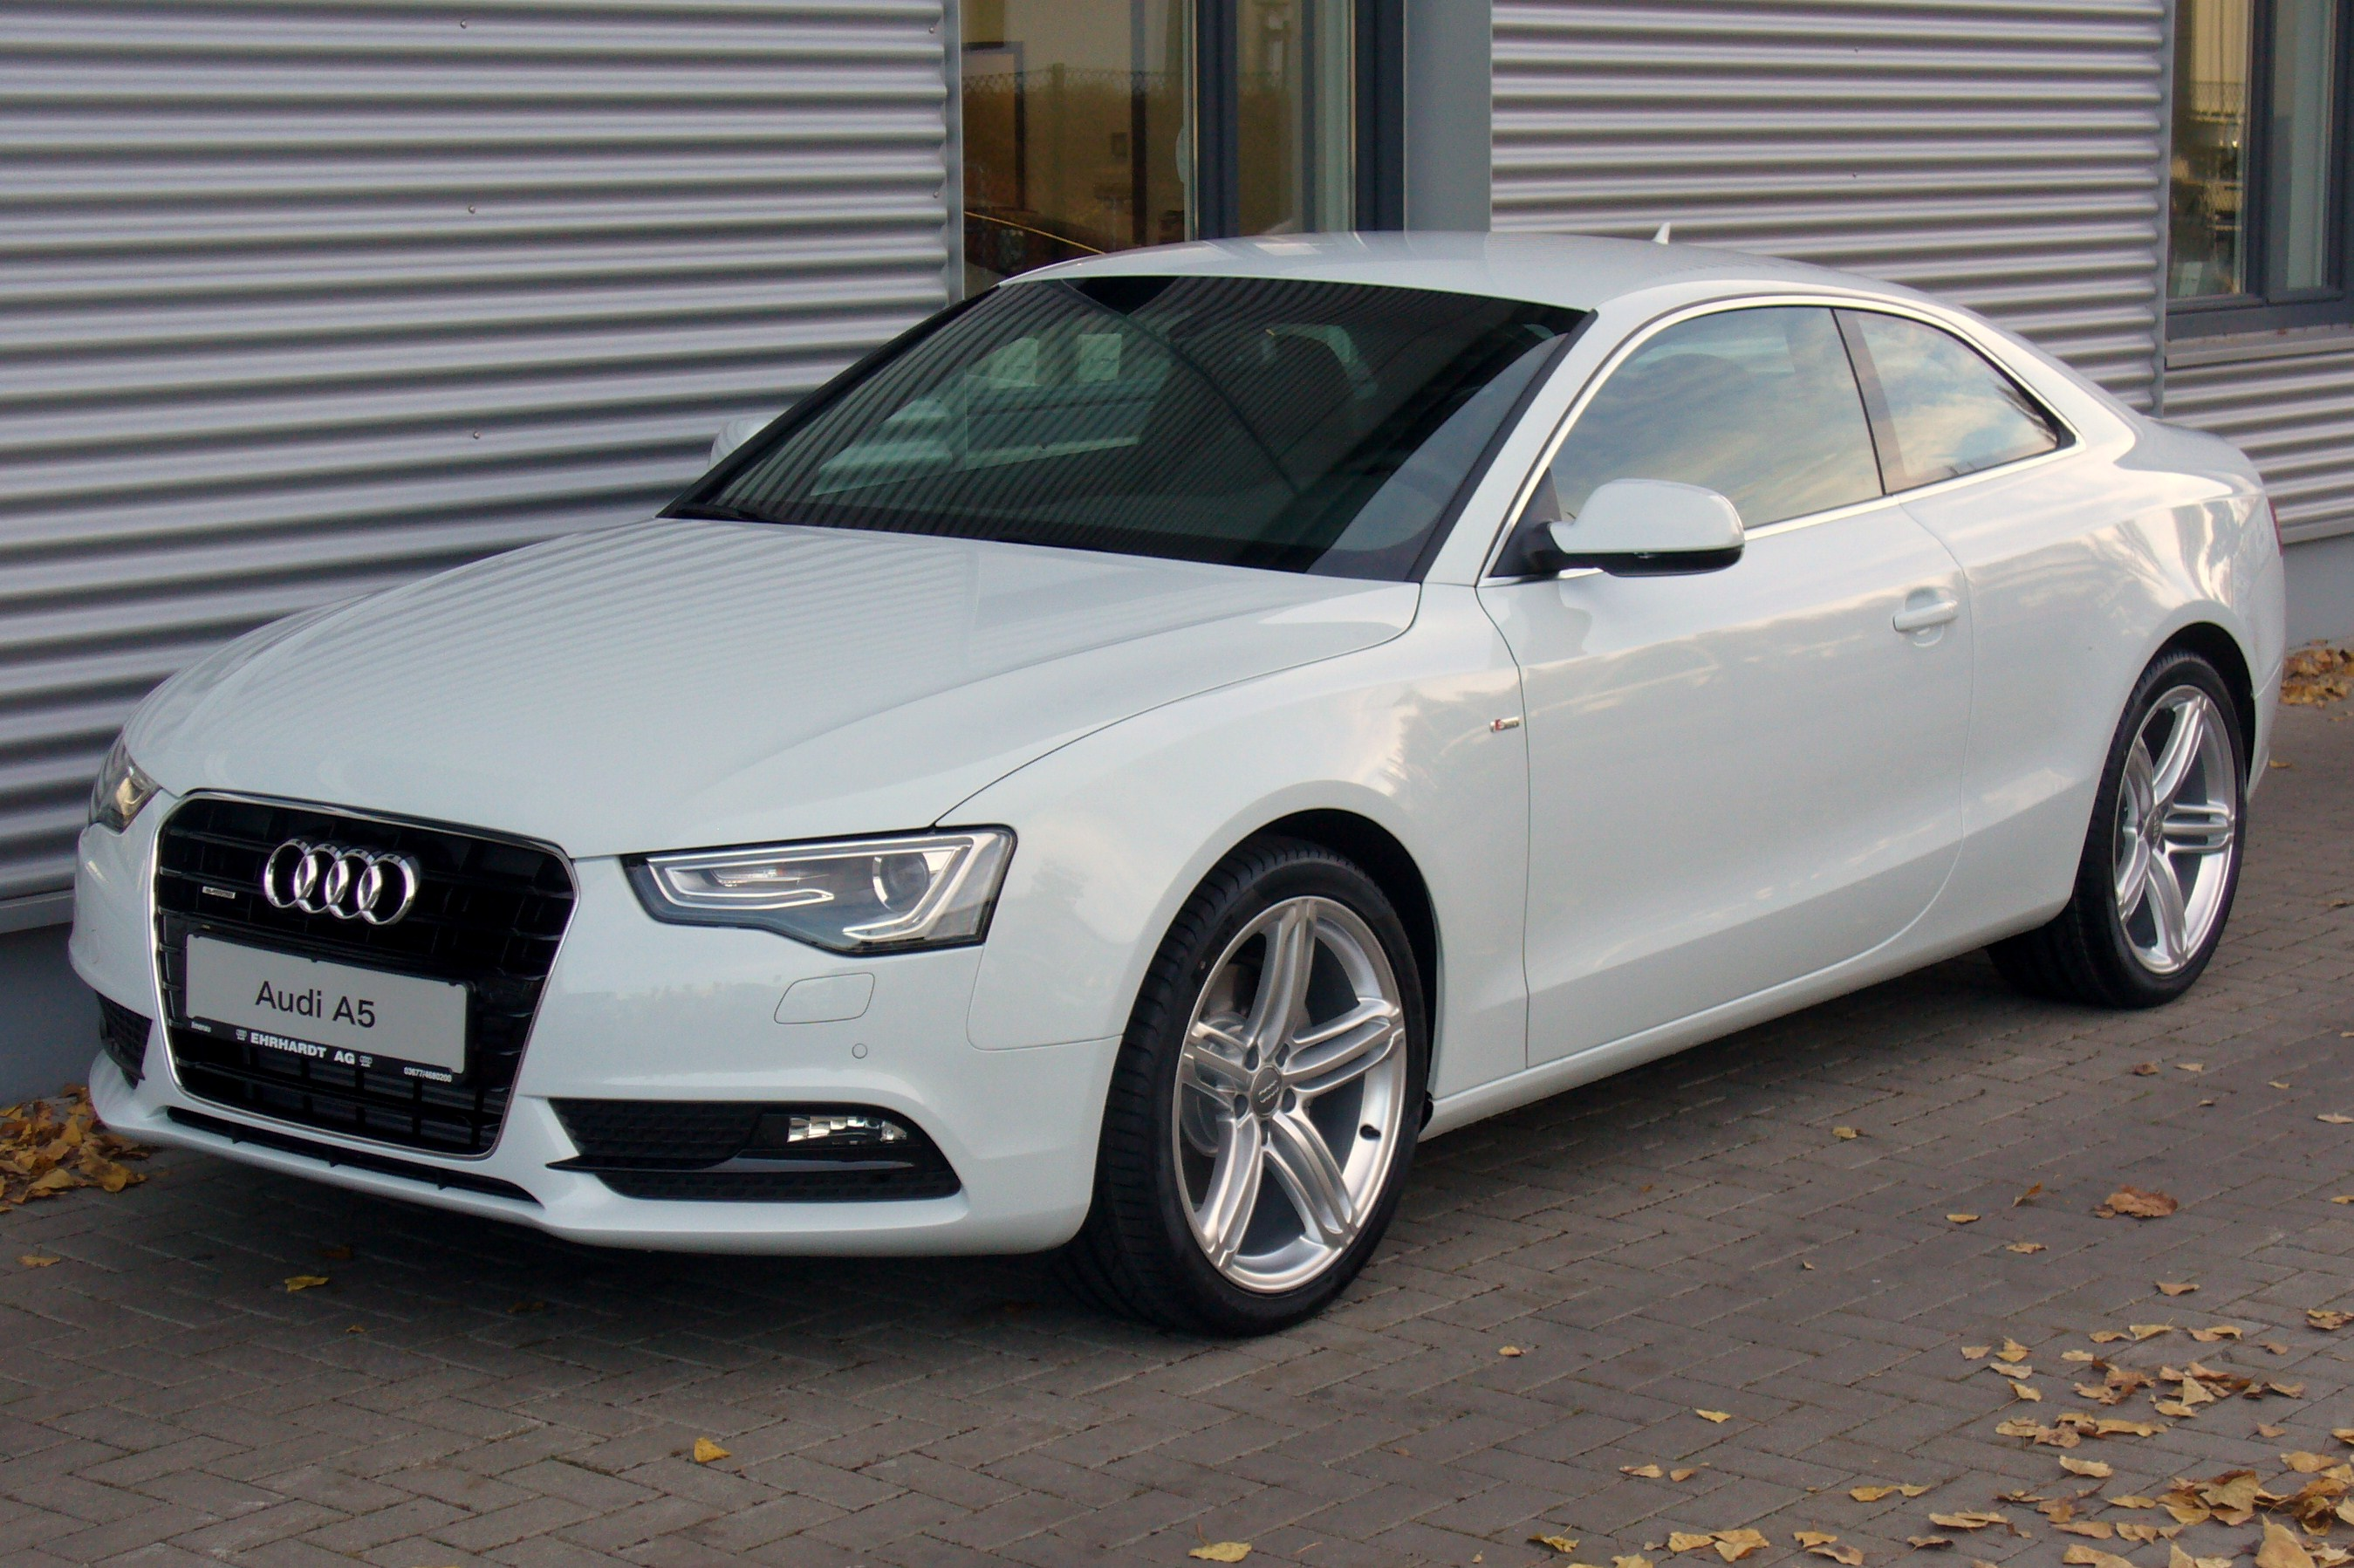 2015 audi a5 cabriolet 8f7 pictures information and specs auto. Black Bedroom Furniture Sets. Home Design Ideas